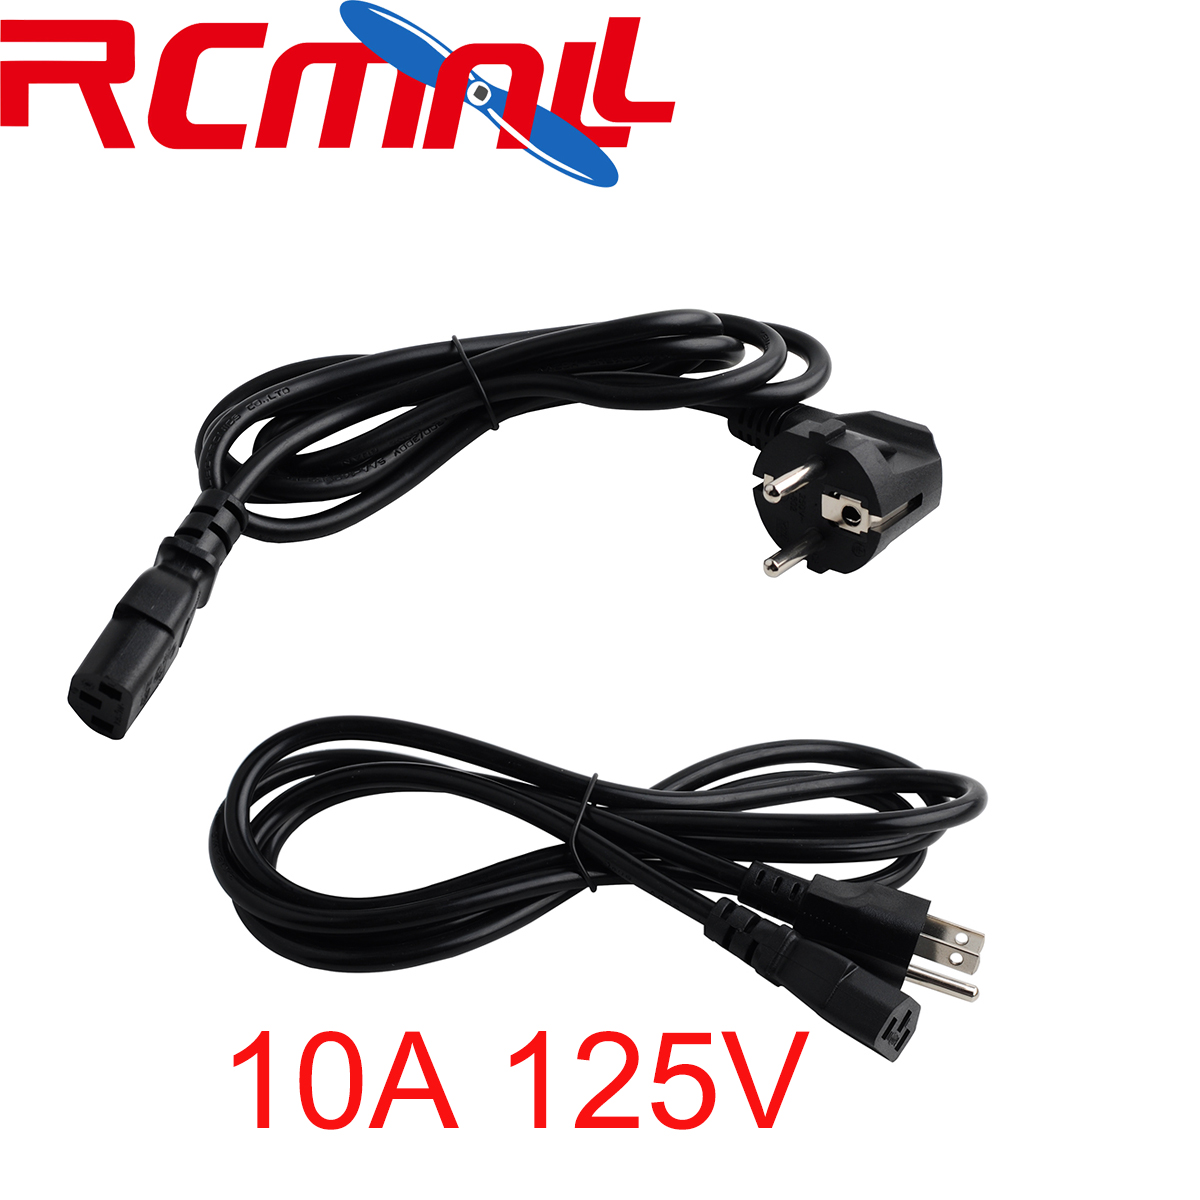 AC Power Supply Adapter Cord Cable Lead 10A 125V / 16A 250V / 10A 250V Charging Charger EU/US/AU Plug 1.5m